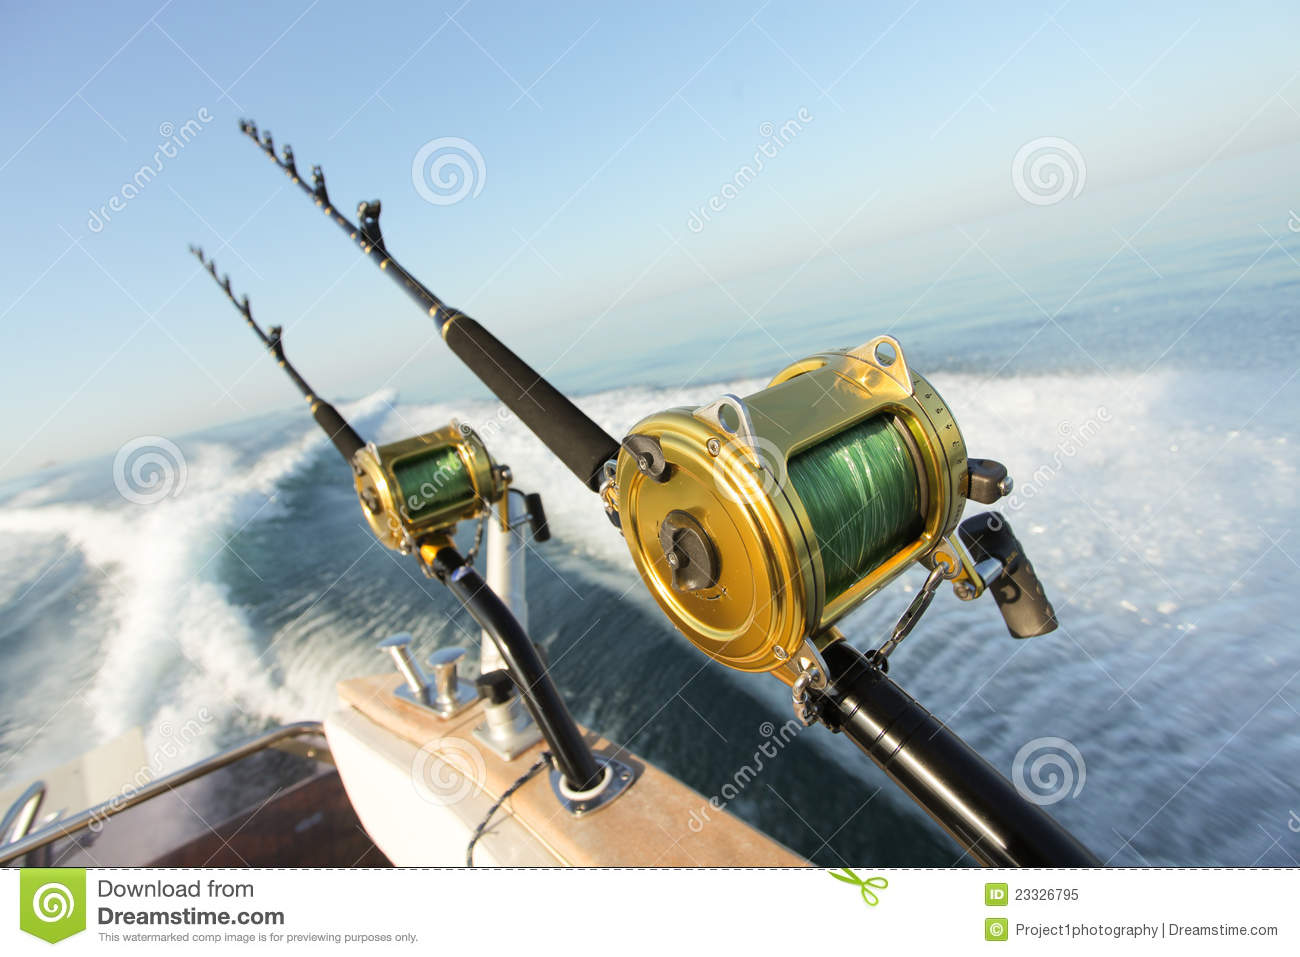 Big game fishing royalty free stock photo image 23326795 for Big game fishing